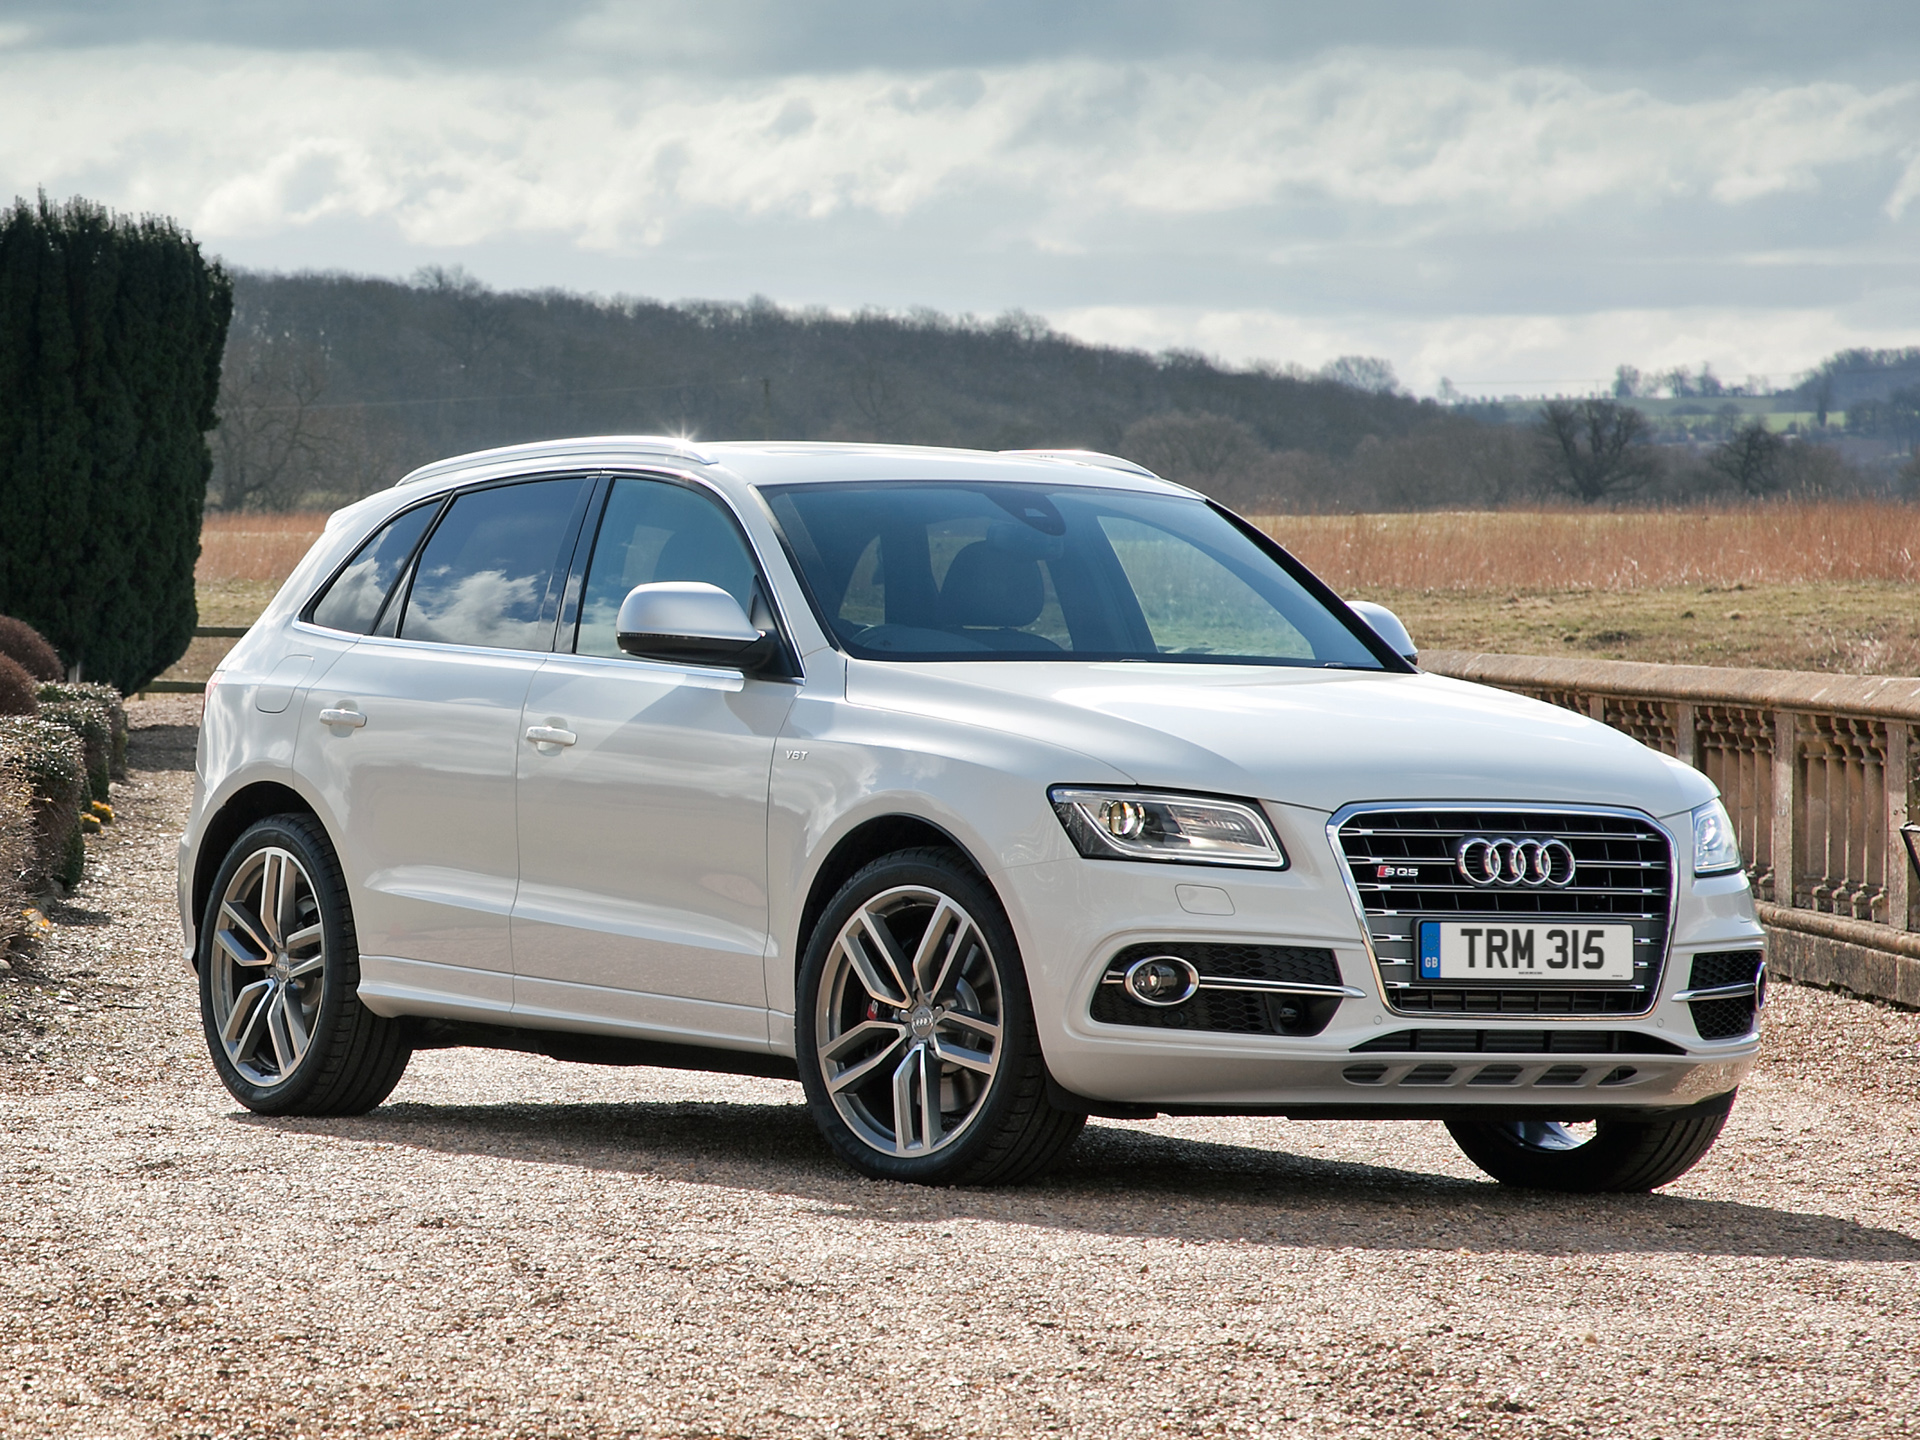 2014 Audi Sq5 Information And Photos Momentcar